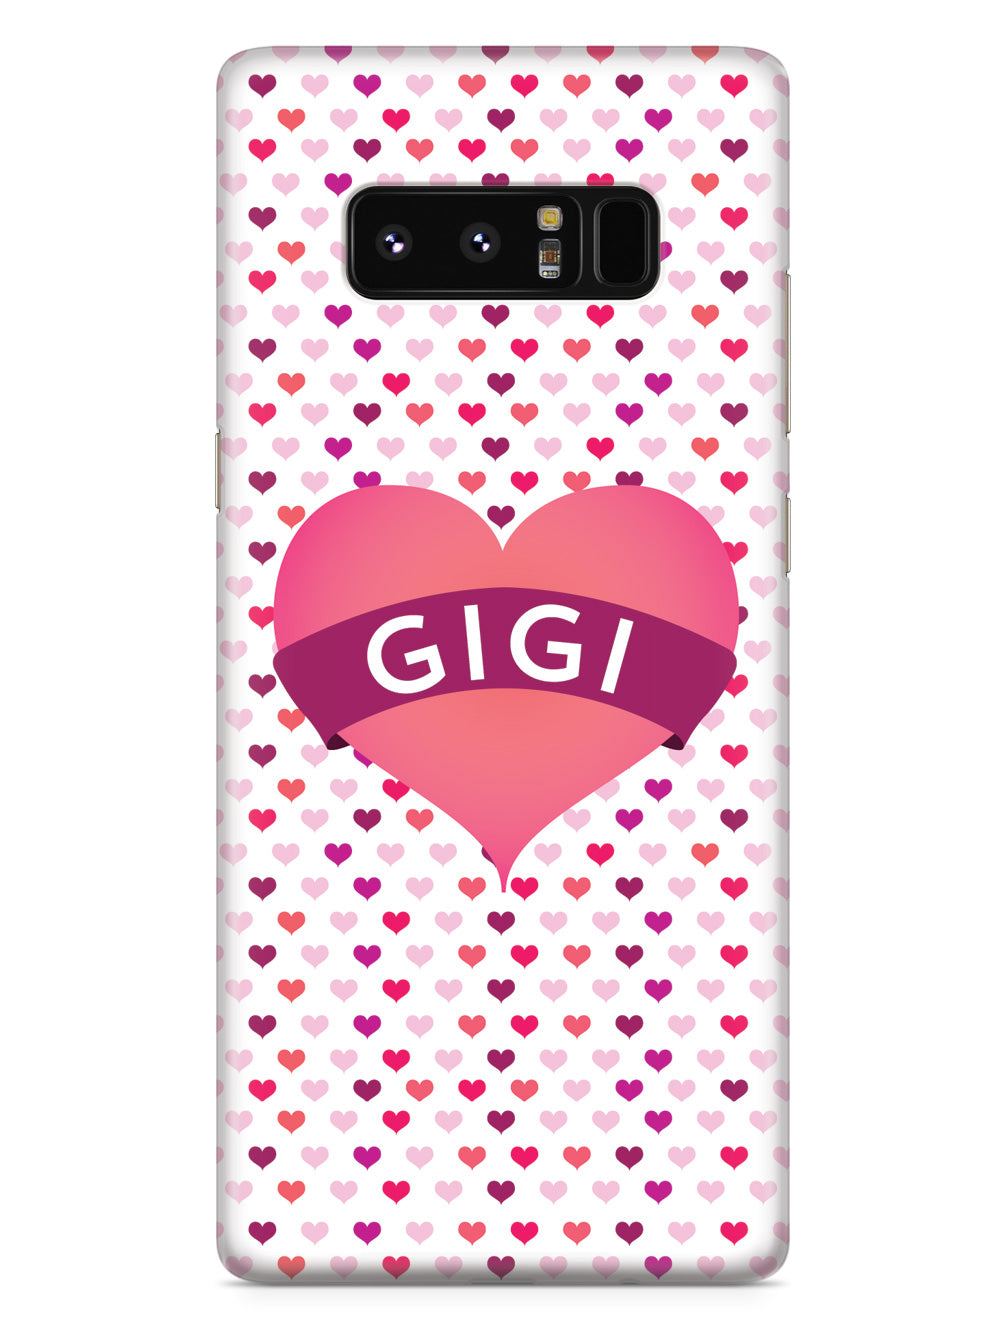 Gigi Heart for Grandma Case